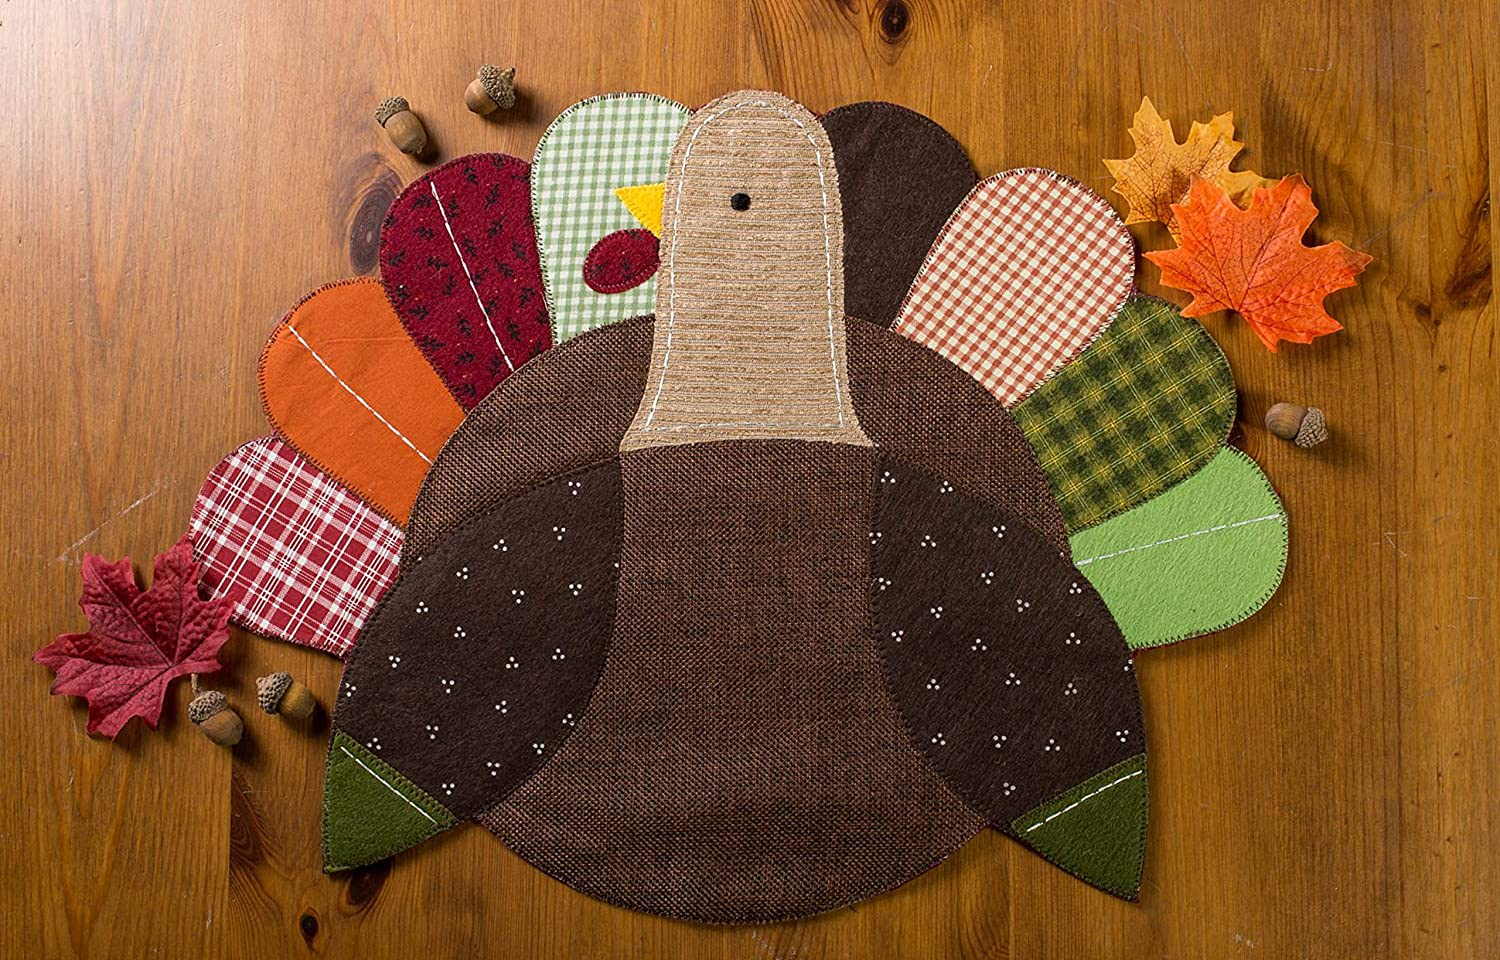 17 Quick and Easy Thanksgiving Sewing Project You Can Do This Fall